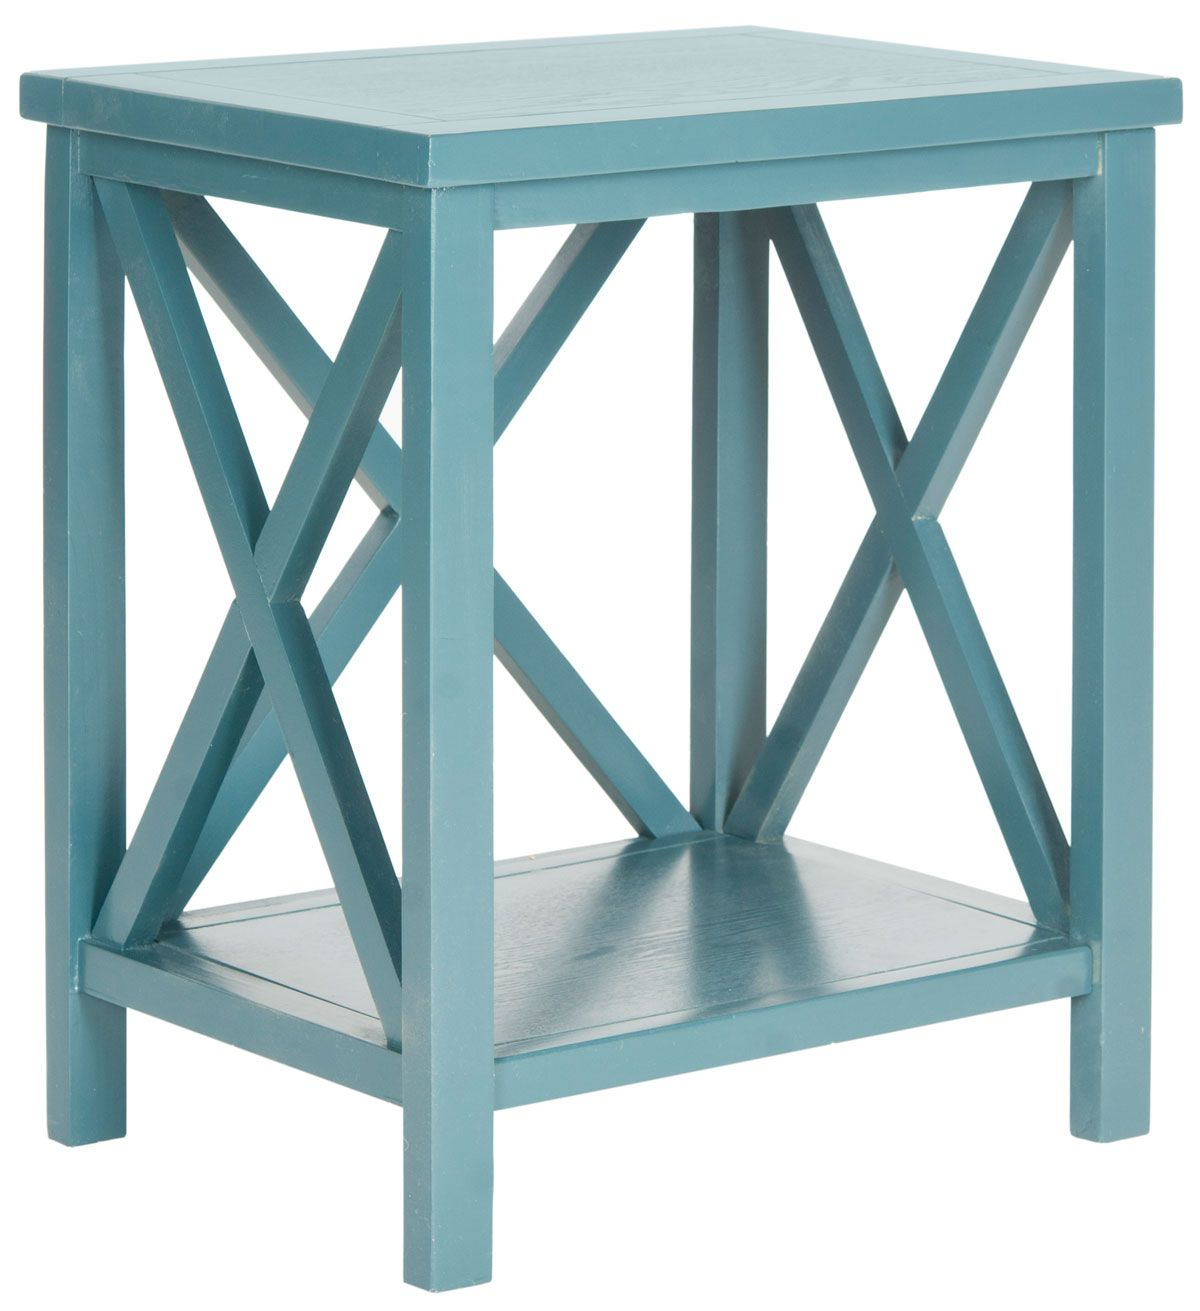 accent tables storage furniture teal blue table safavieh tall with stools front porch sets white wire side counter height dining chairs pedestal kitchen reclaimed wood square